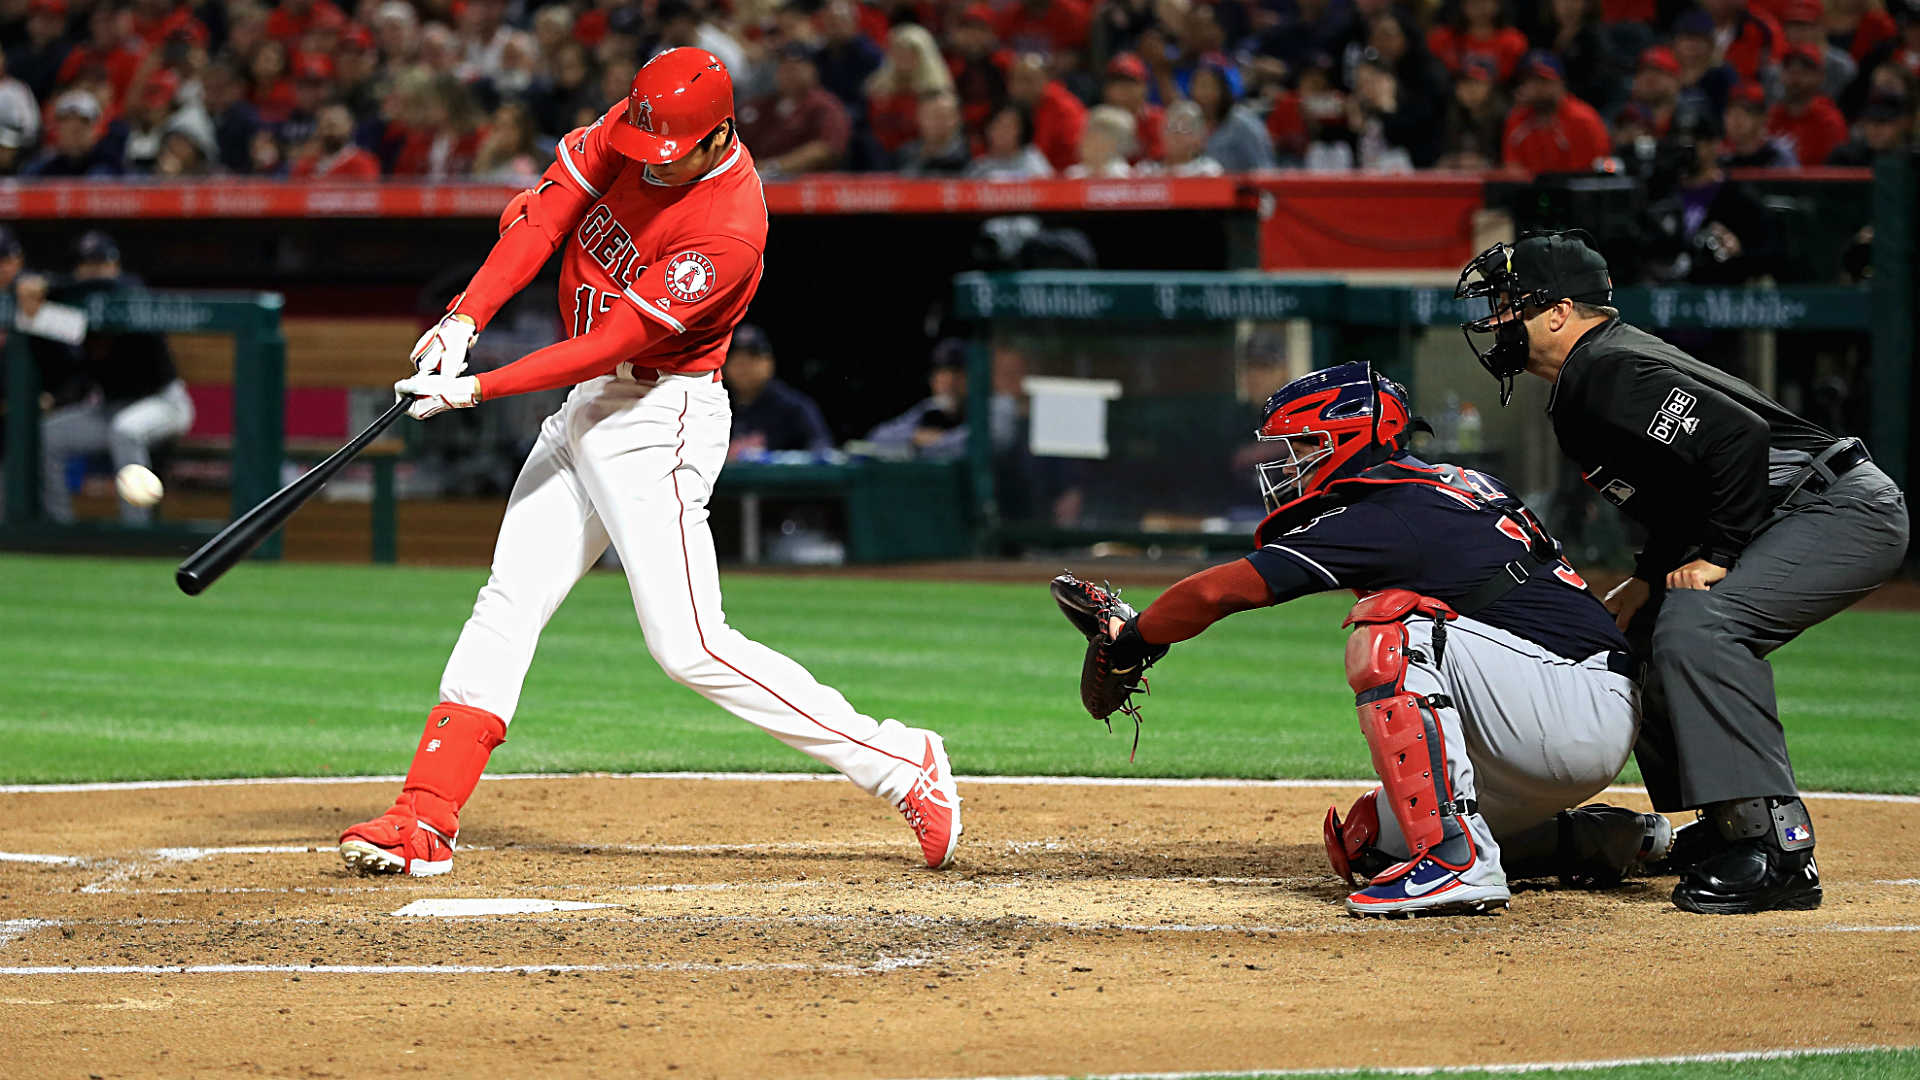 Los Angeles Angels Player Shohei Ohtani Hits First Home Run